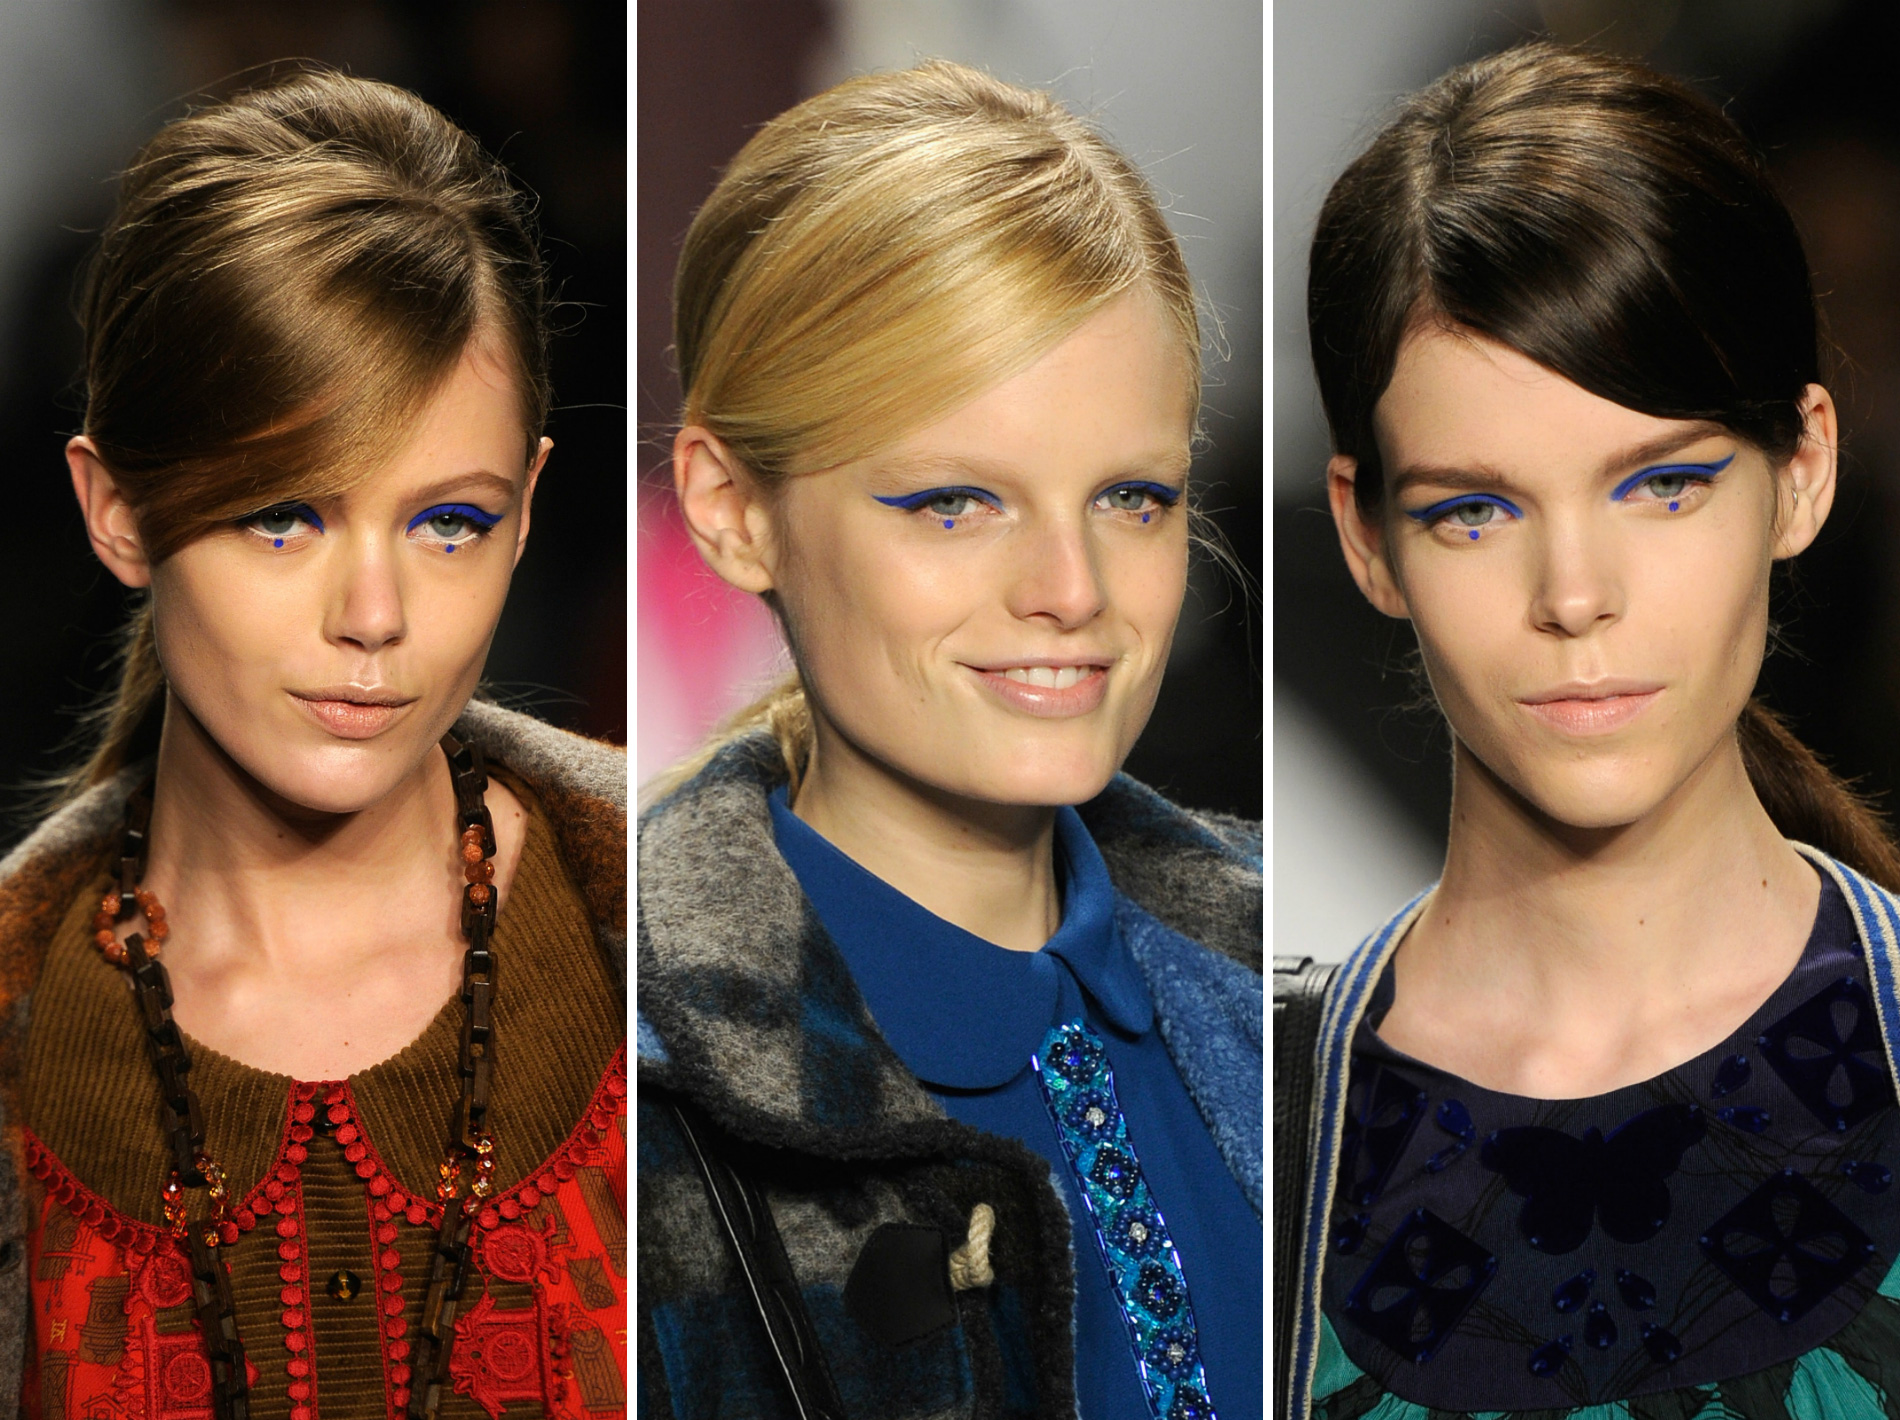 Anna Sui models wearing dotted eye makeup in 2012